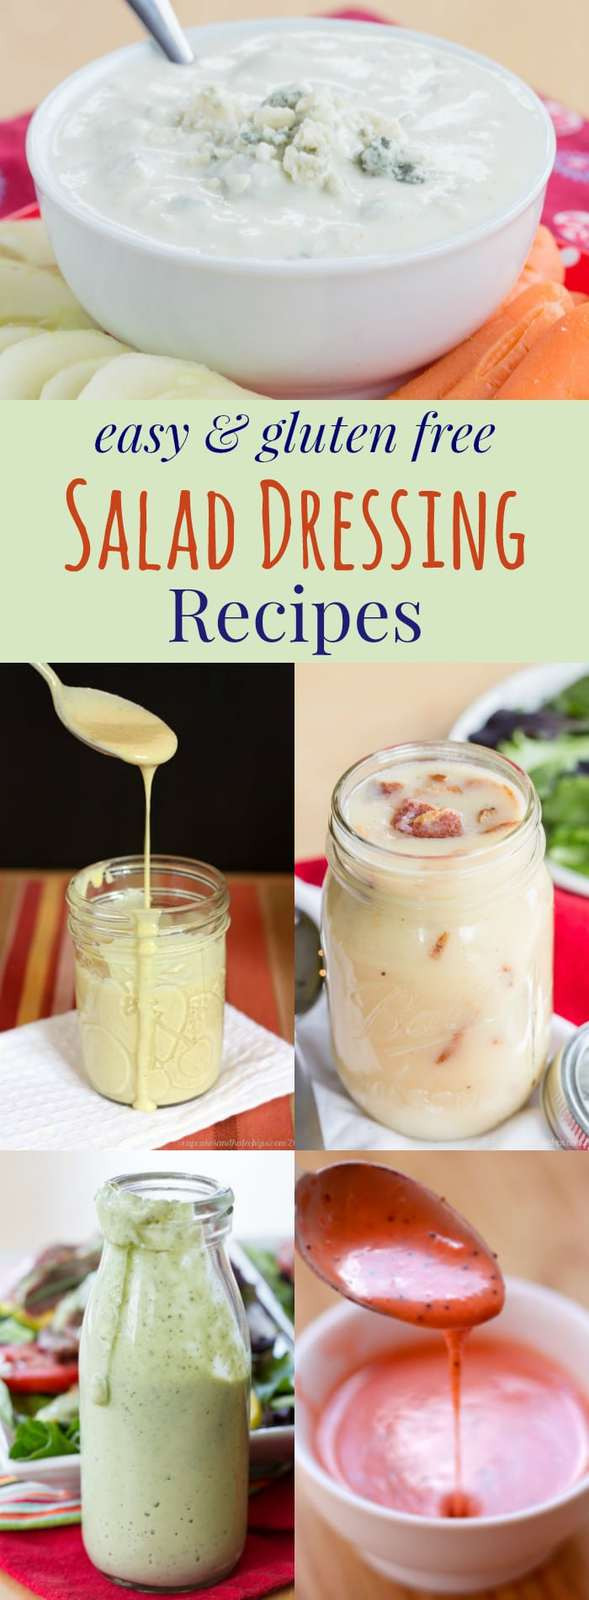 Dairy Free Salad Dressing Recipes  gluten free salad dressing recipes